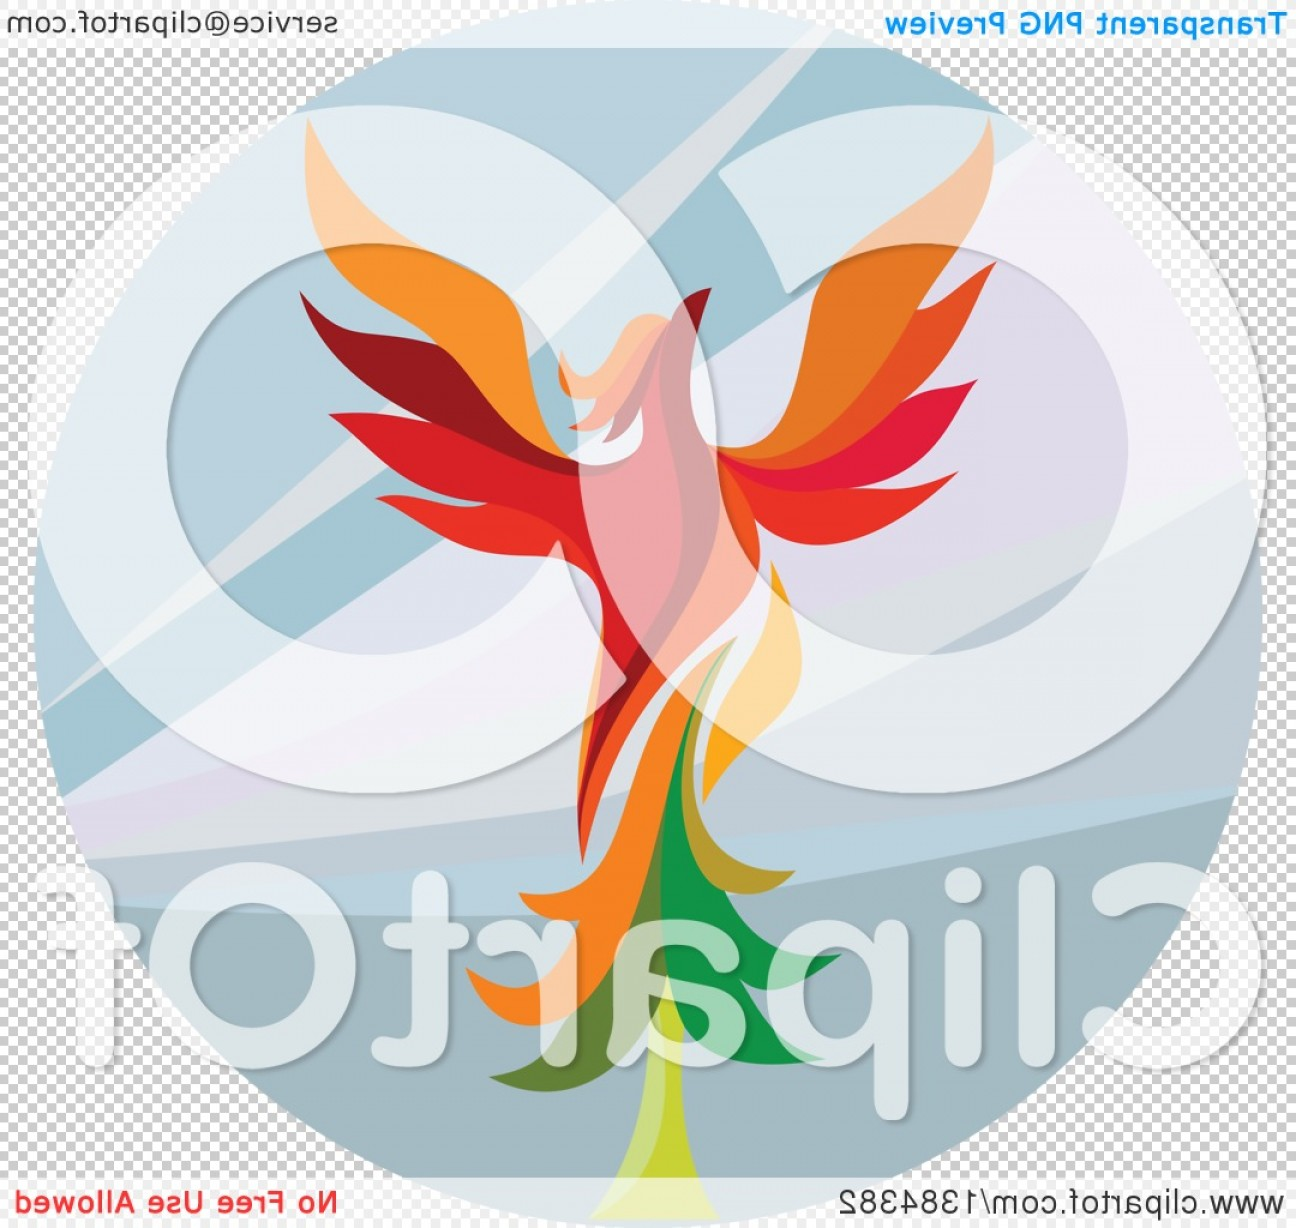 Firebird Vector Transparent Background: Retro Colorful Flying Phoenix Bird Over A Circle